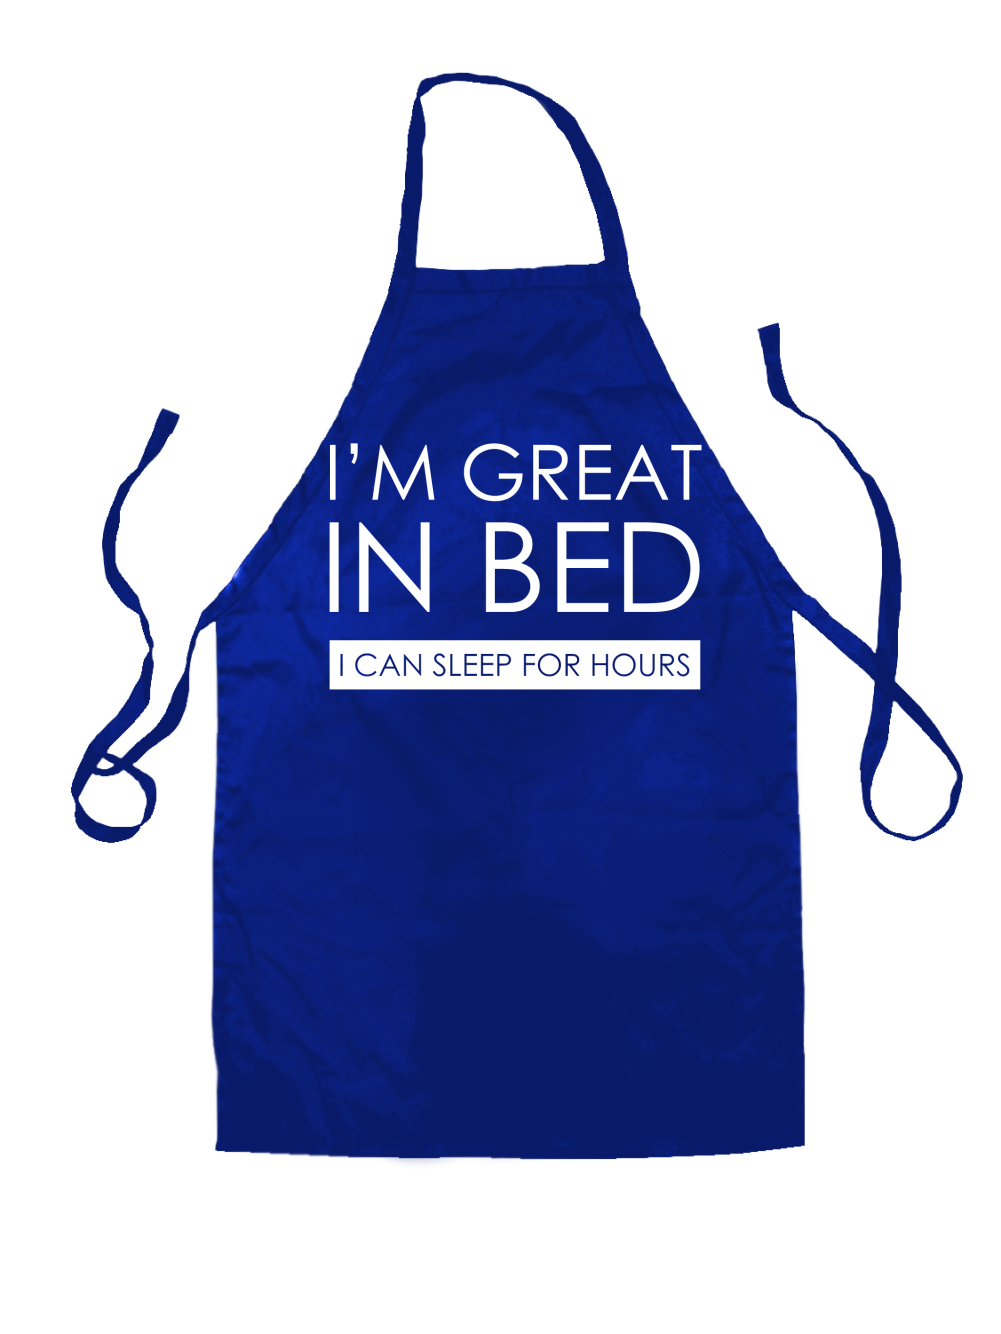 I'm Great In Bed, I Can Sleep For Hours - Unisex Apron - Funny - Joke - Comedy